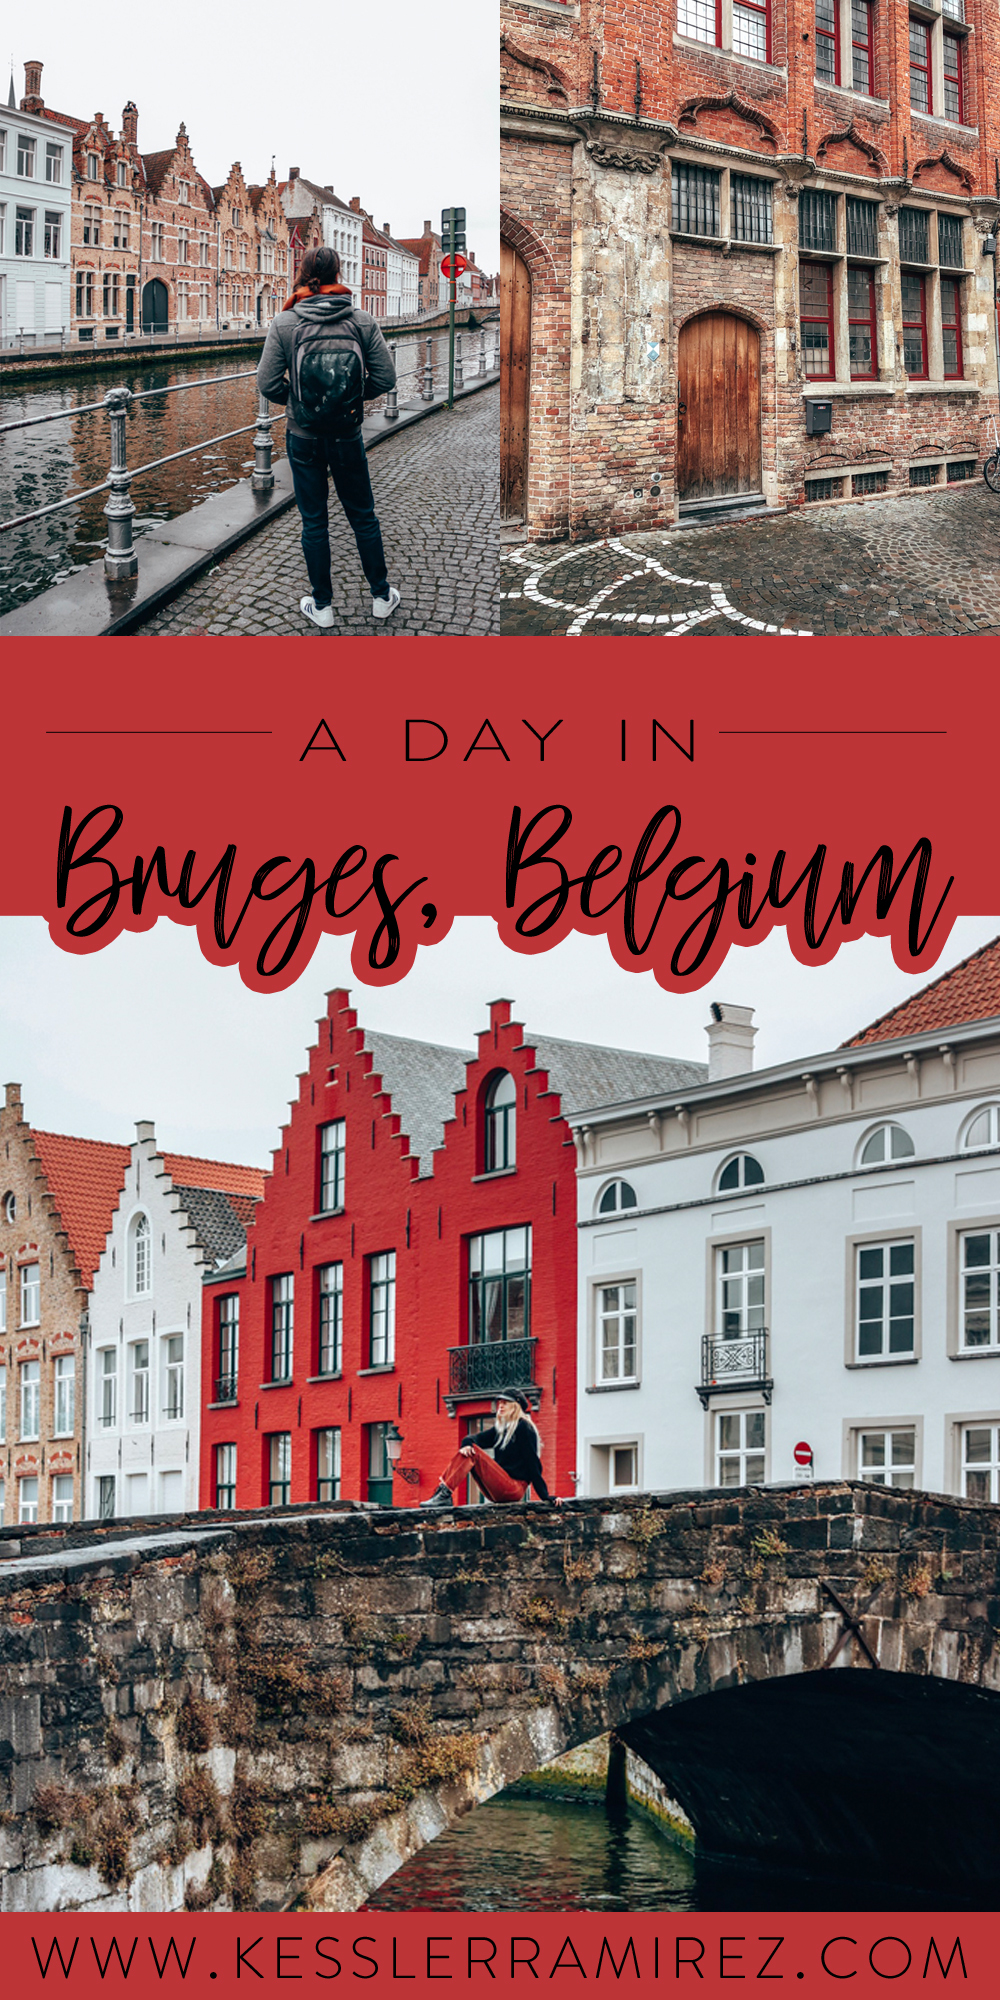 A Day in Bruges, Belgium